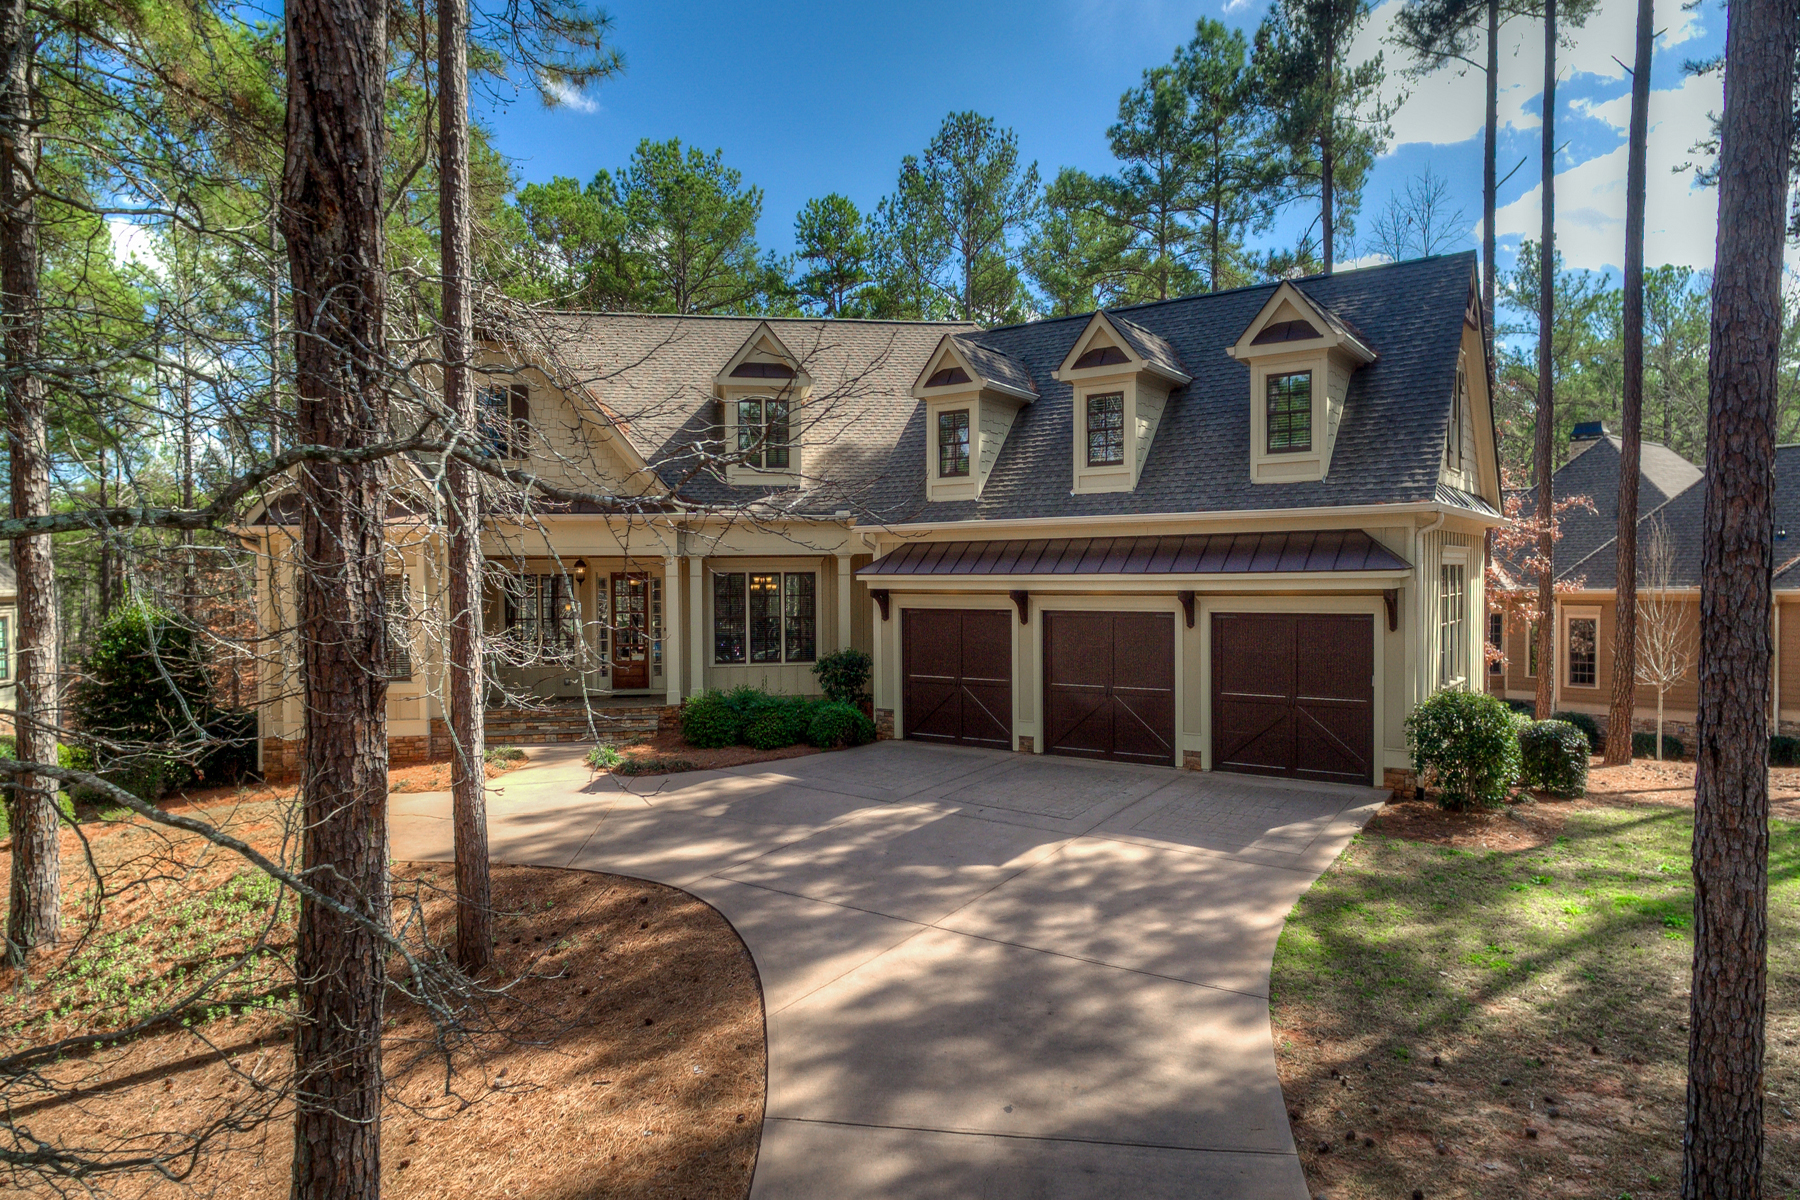 Enfamiljshus för Försäljning vid Amazing Lake Oconee Newer Construction 1051 Swift Creek Greensboro, Georgien 30642 Usa